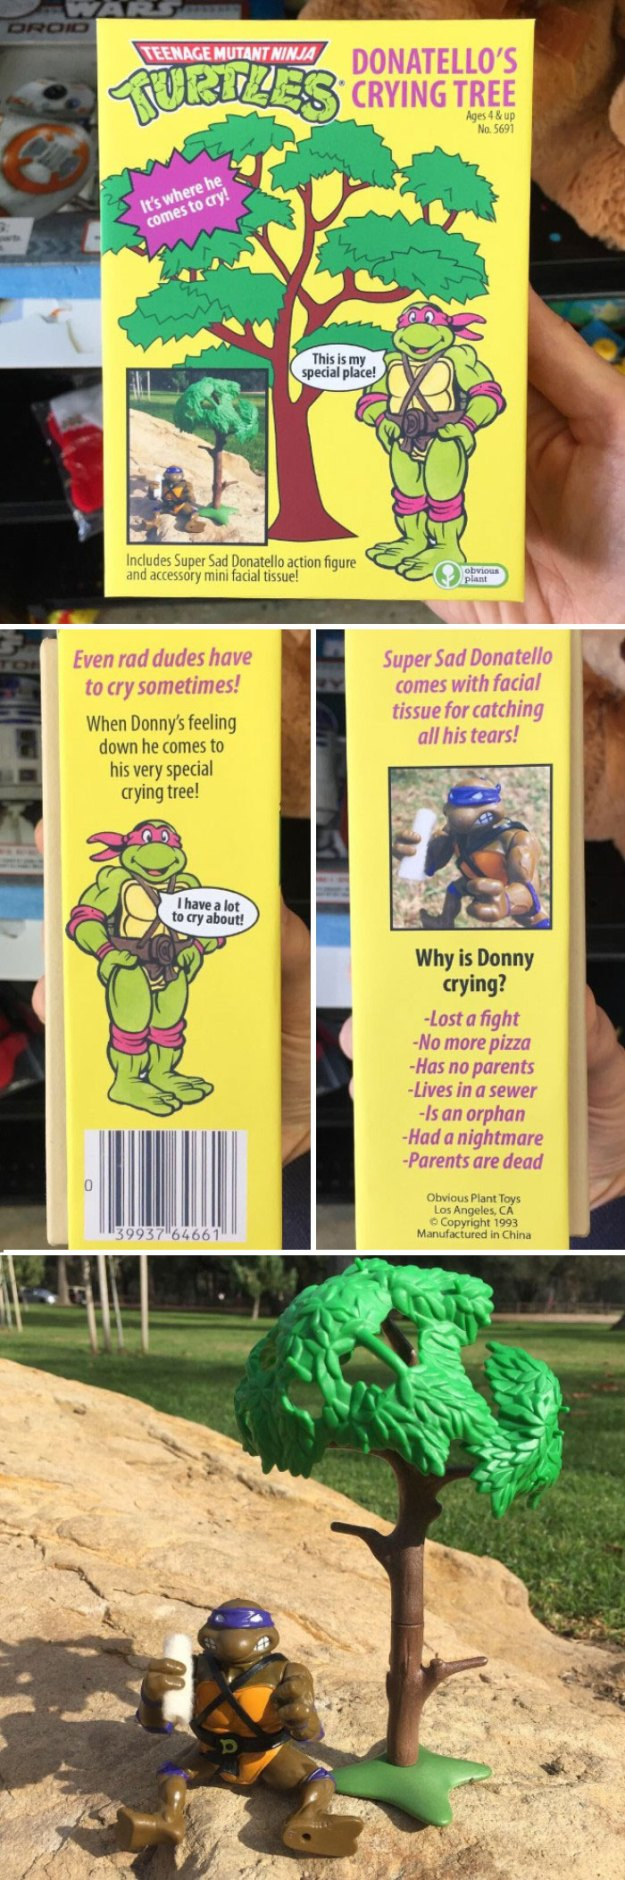 funny-fake-toy18-5c04e4b0ea7b7__700 27 Hilarious Fake Christmas Gifts That 'Obvious Plant' Planted In Stores Design Random